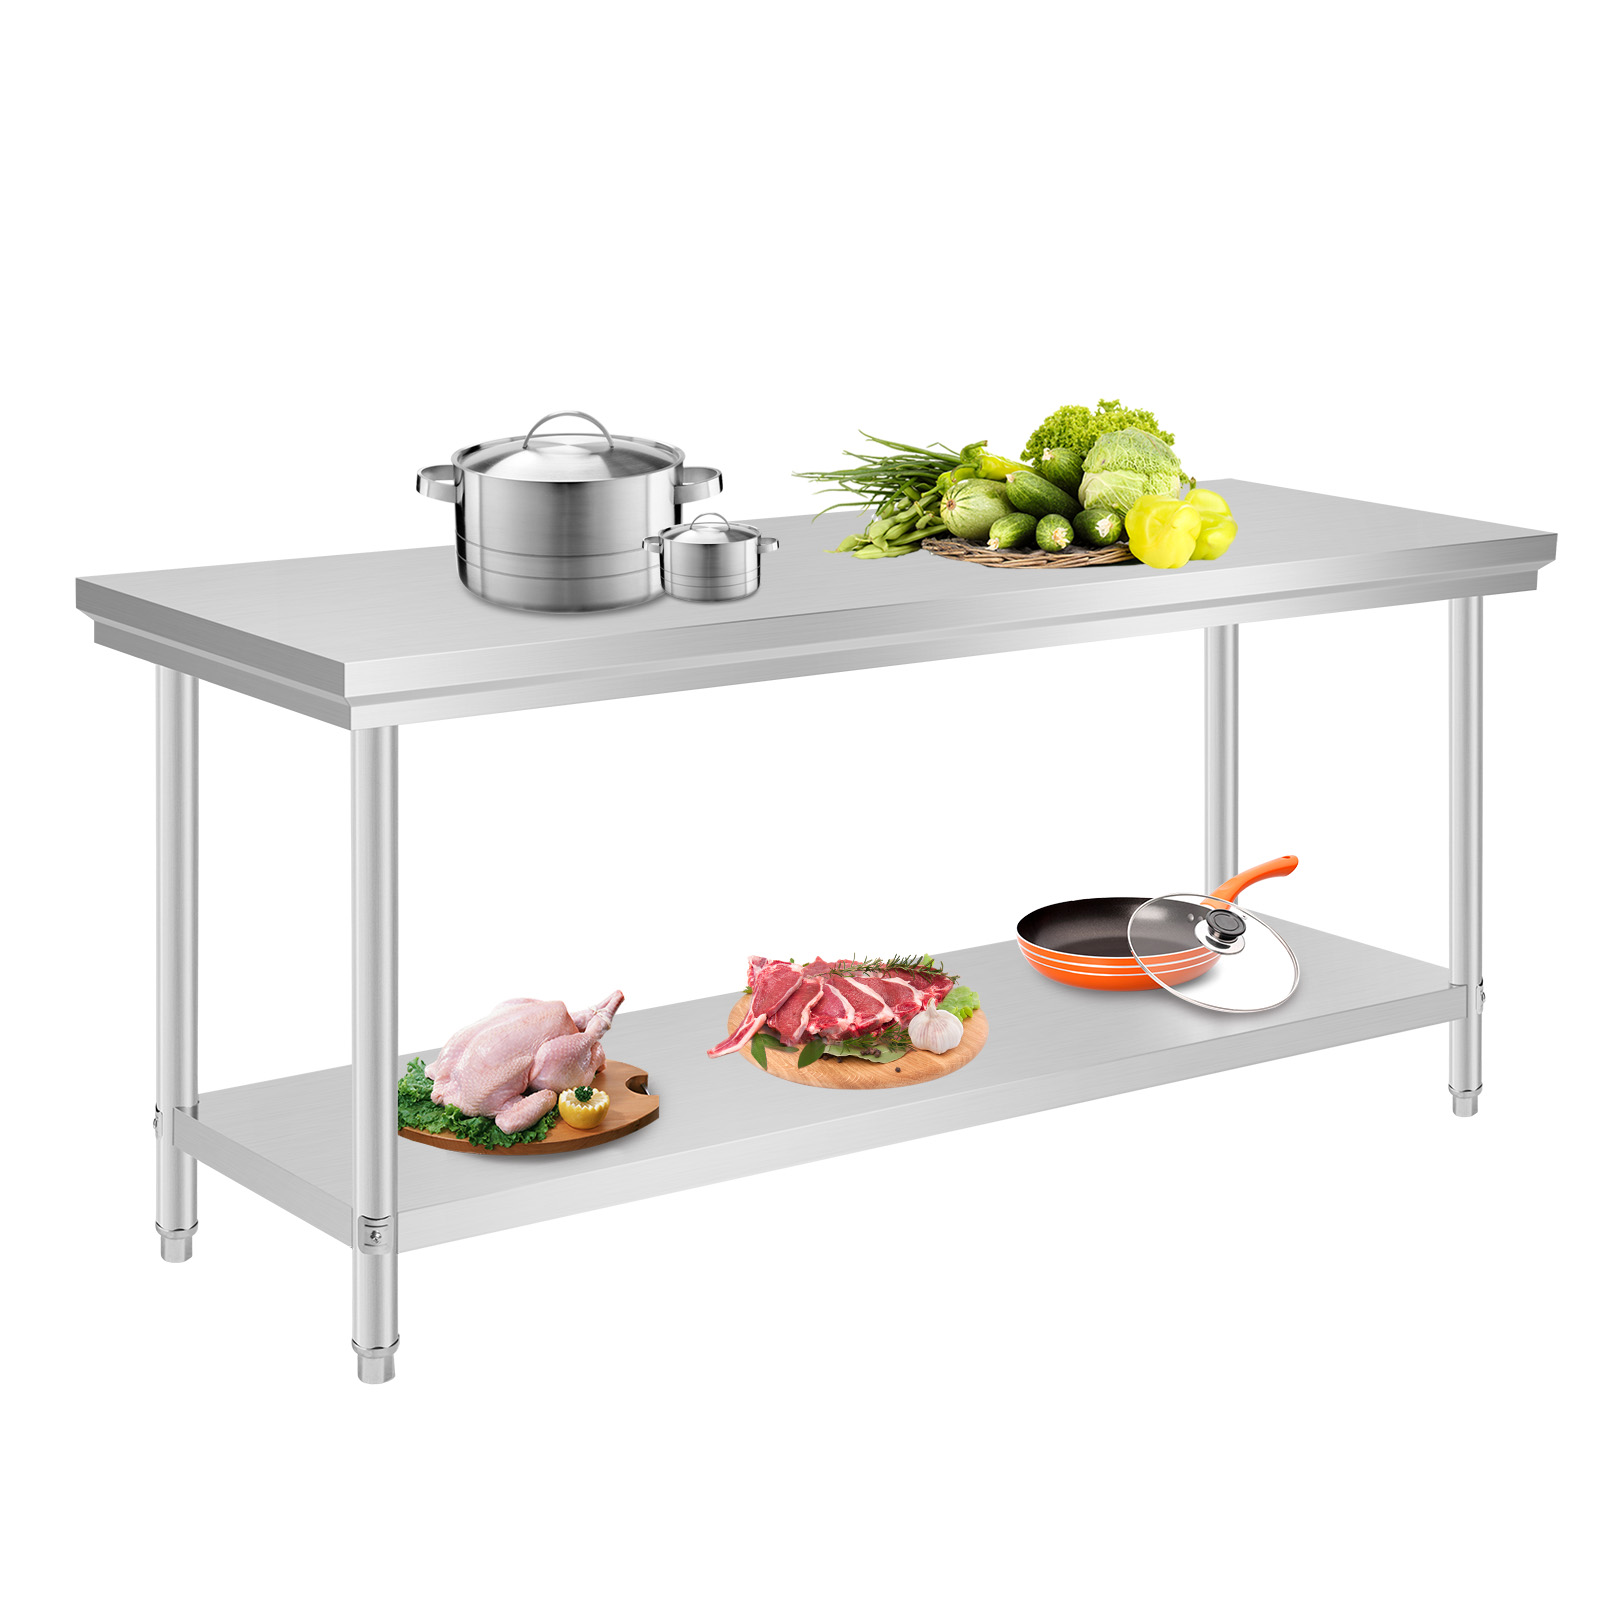 kitchen work tables single hole faucet 201 commercial stainless steel bench top food